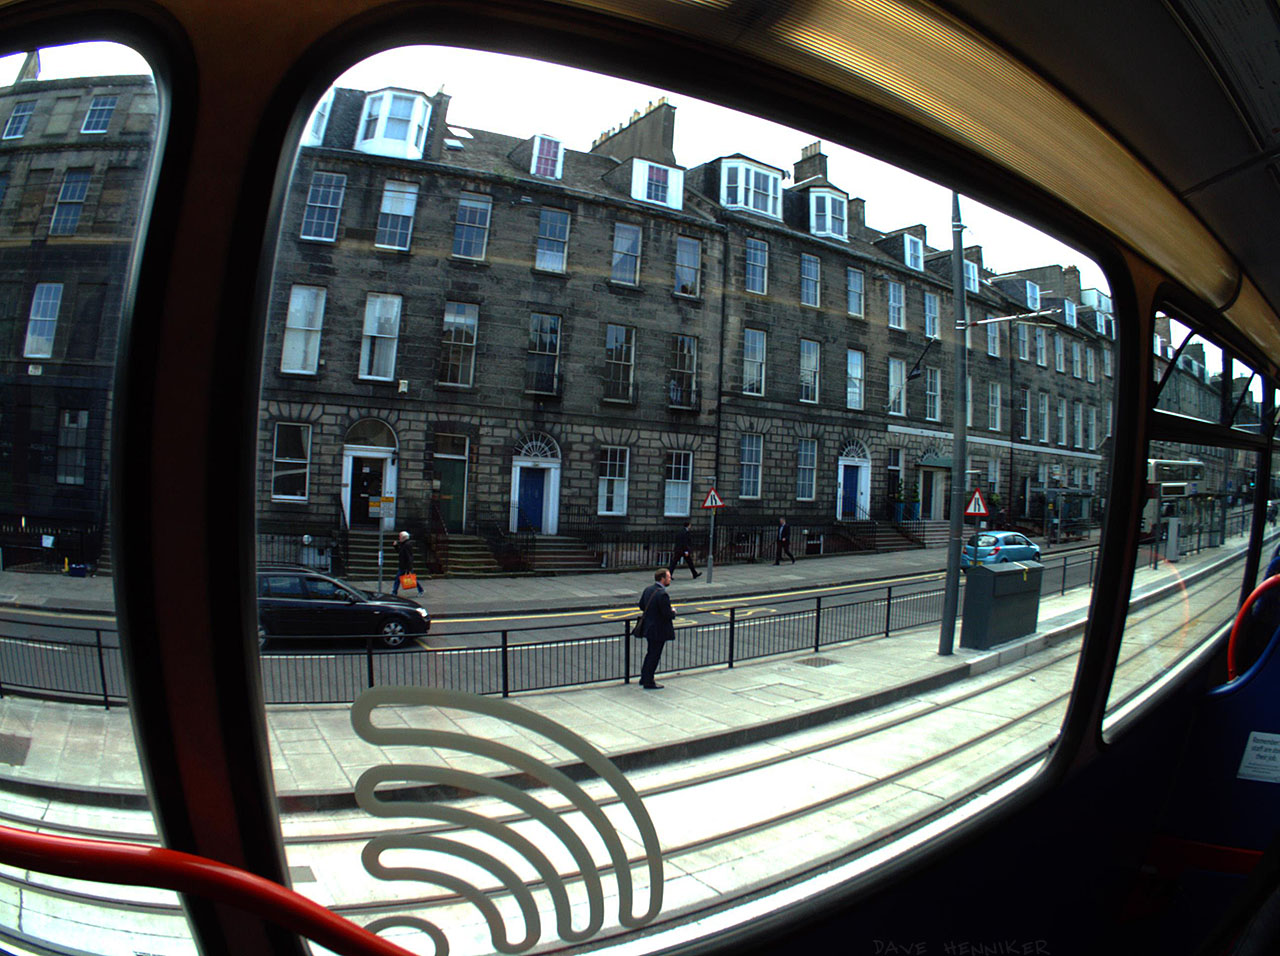 York Place isn't Leith or Leith Street but it's where I got off the bus for another walk down Leith Walk. This is an Autographer picture, taken automatically according to an algorithm and a few sensors.